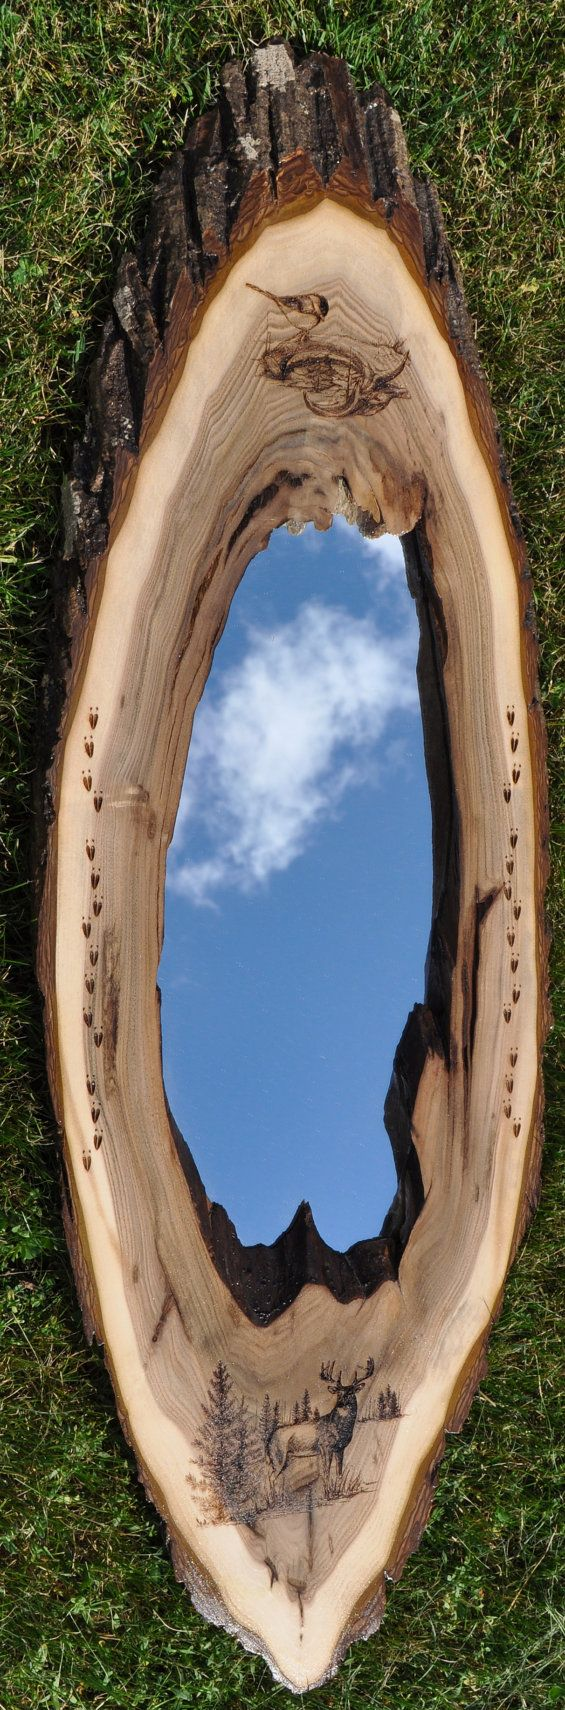 Hey, I found this really awesome Etsy listing at https://www.etsy.com/listing/200935905/live-edge-rustic-wood-oval-mirror-with